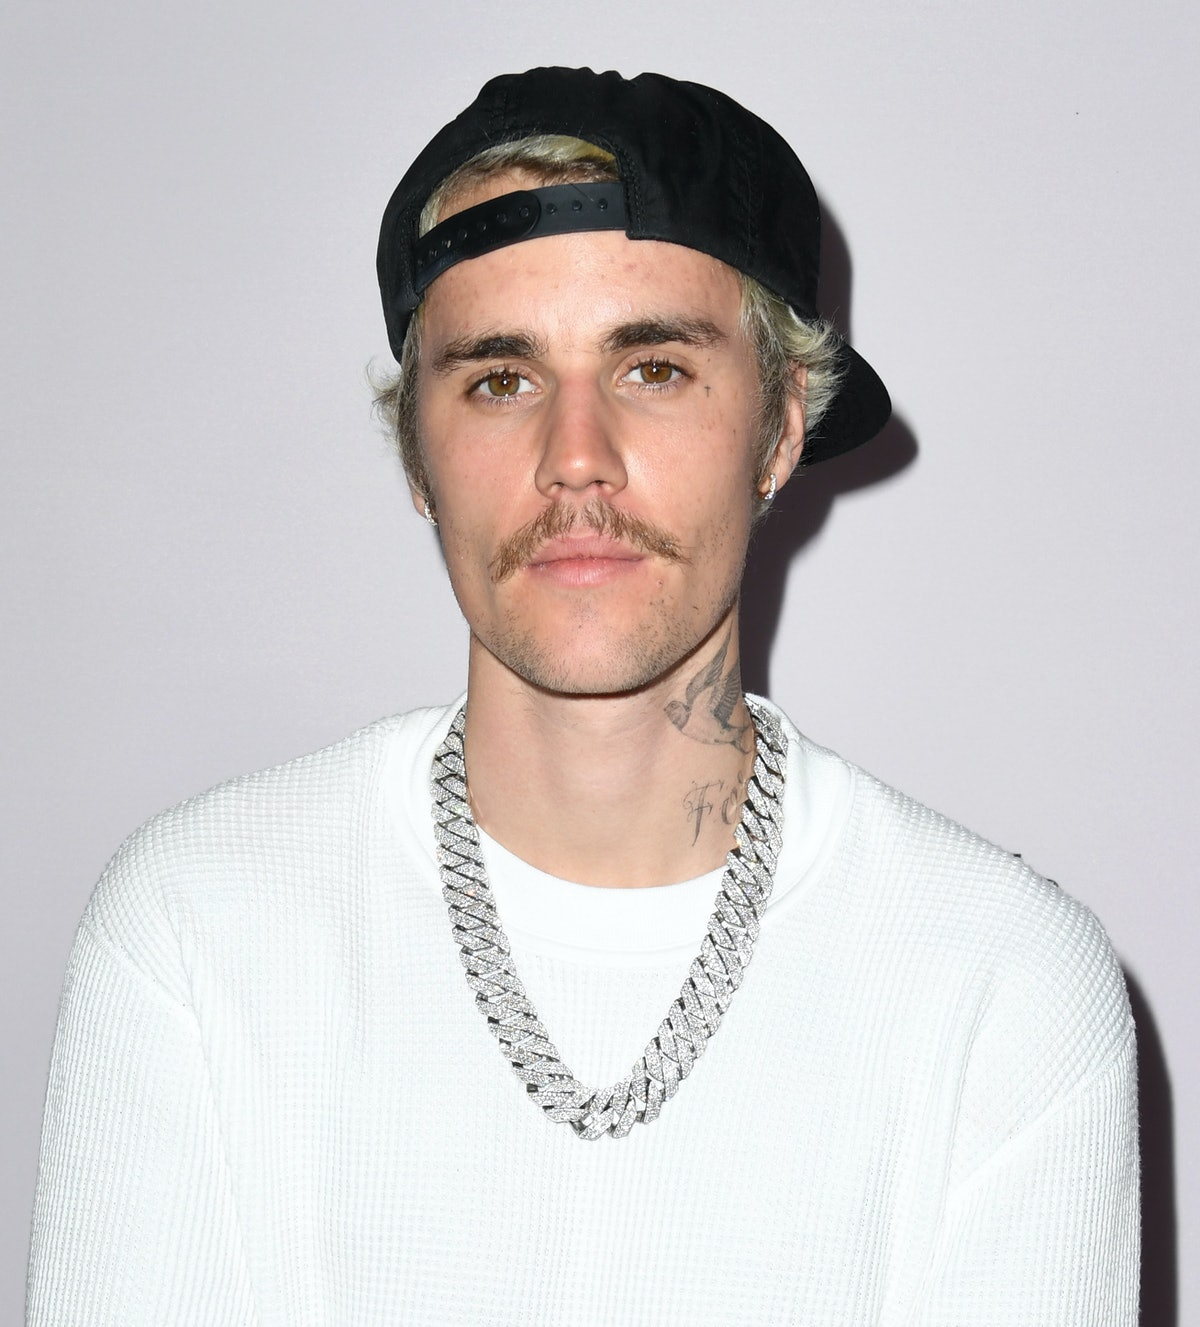 Justin Bieber named one of the most ridiculous (bad) Pisces celebrities.